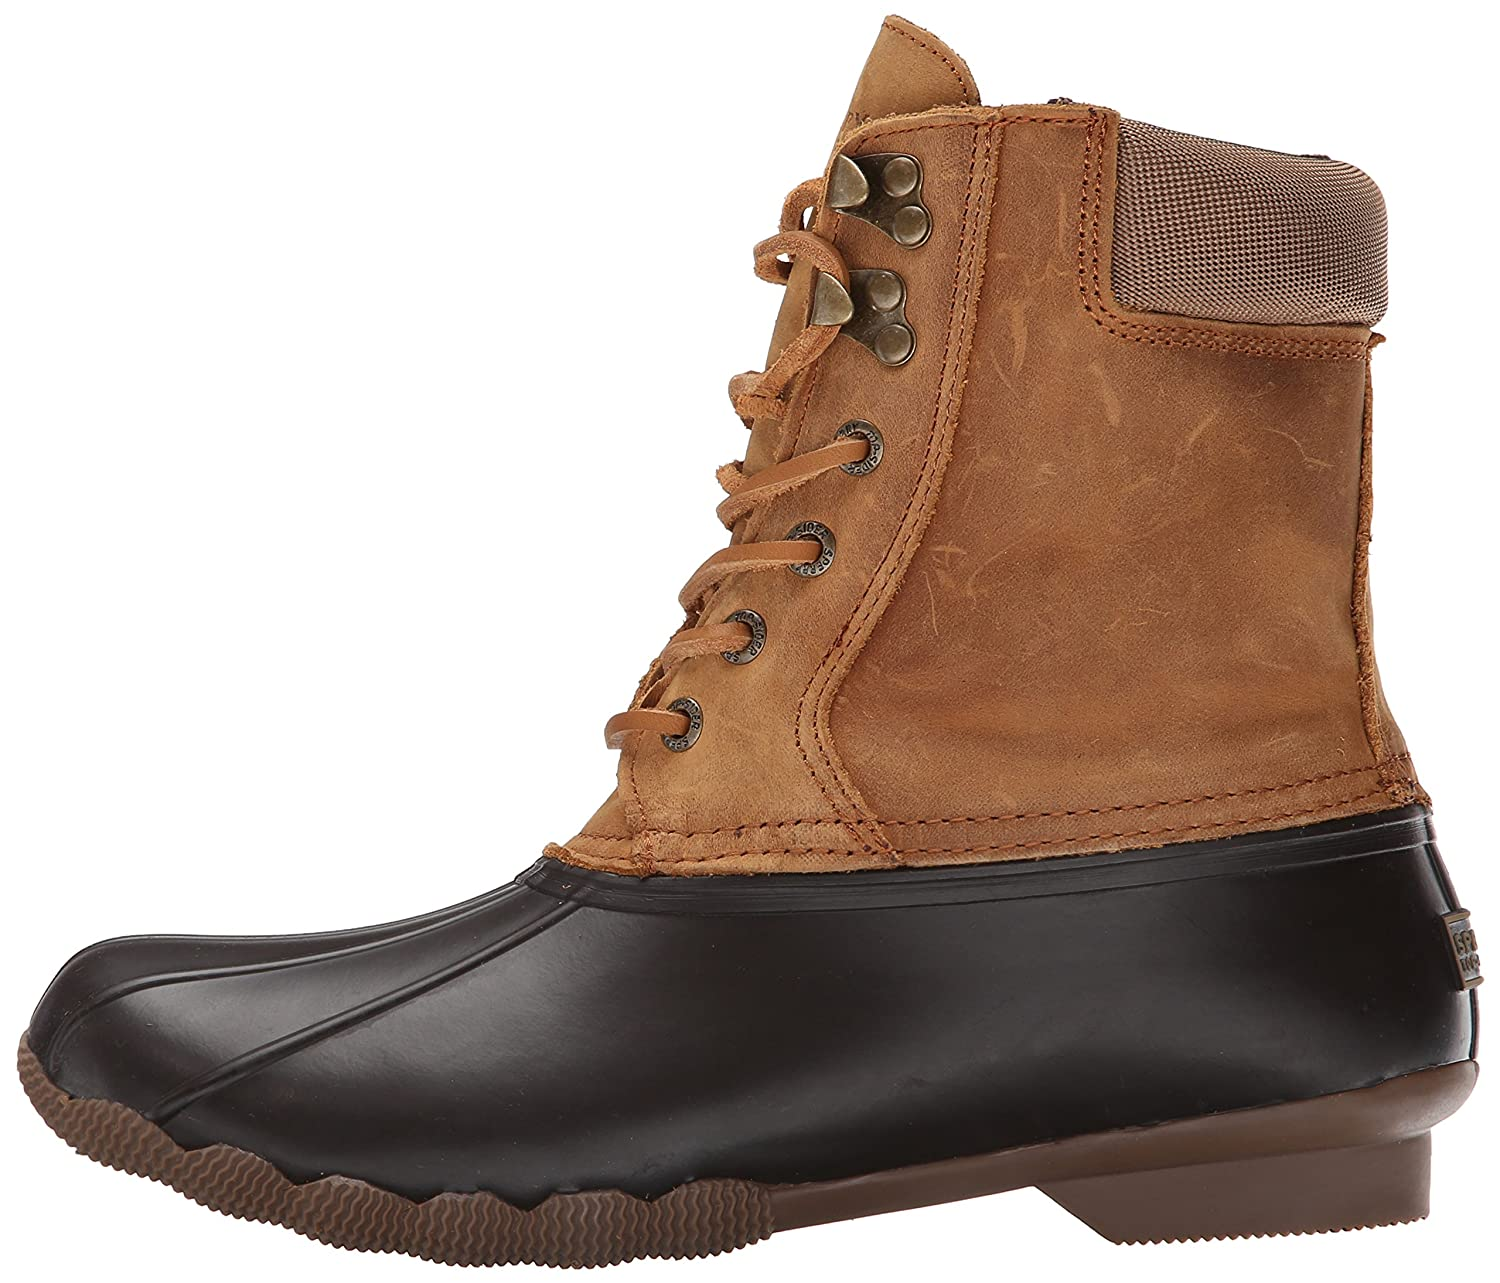 Sperry Top-Sider Women's Shearwater Snow Boot B00QW755J6 5 B(M) US|Brown/Tan